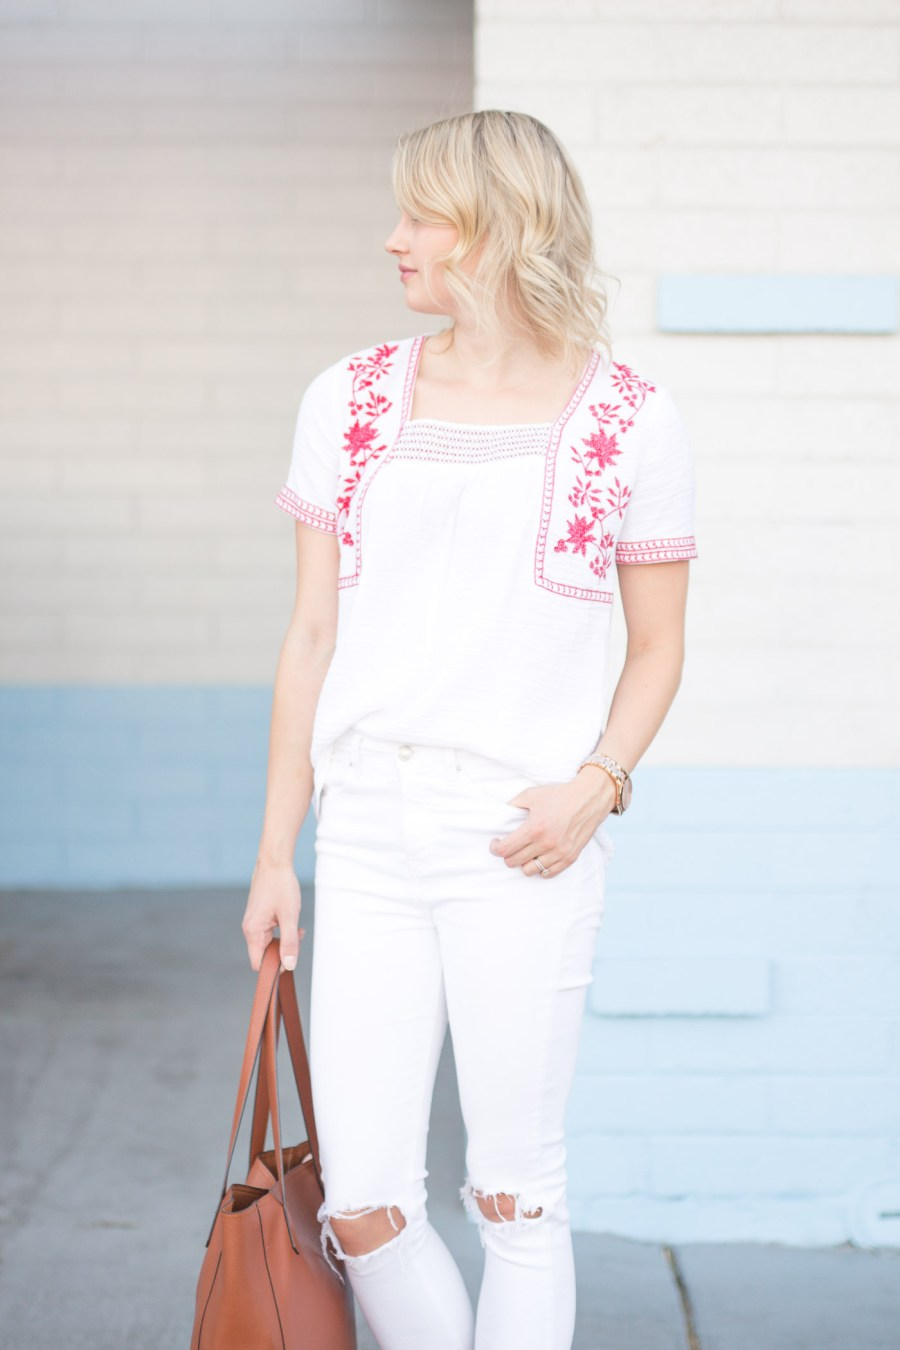 How To Add Color To Your Closet When You Usually Wear Neutrals, white on white outfit, Old Navy summer